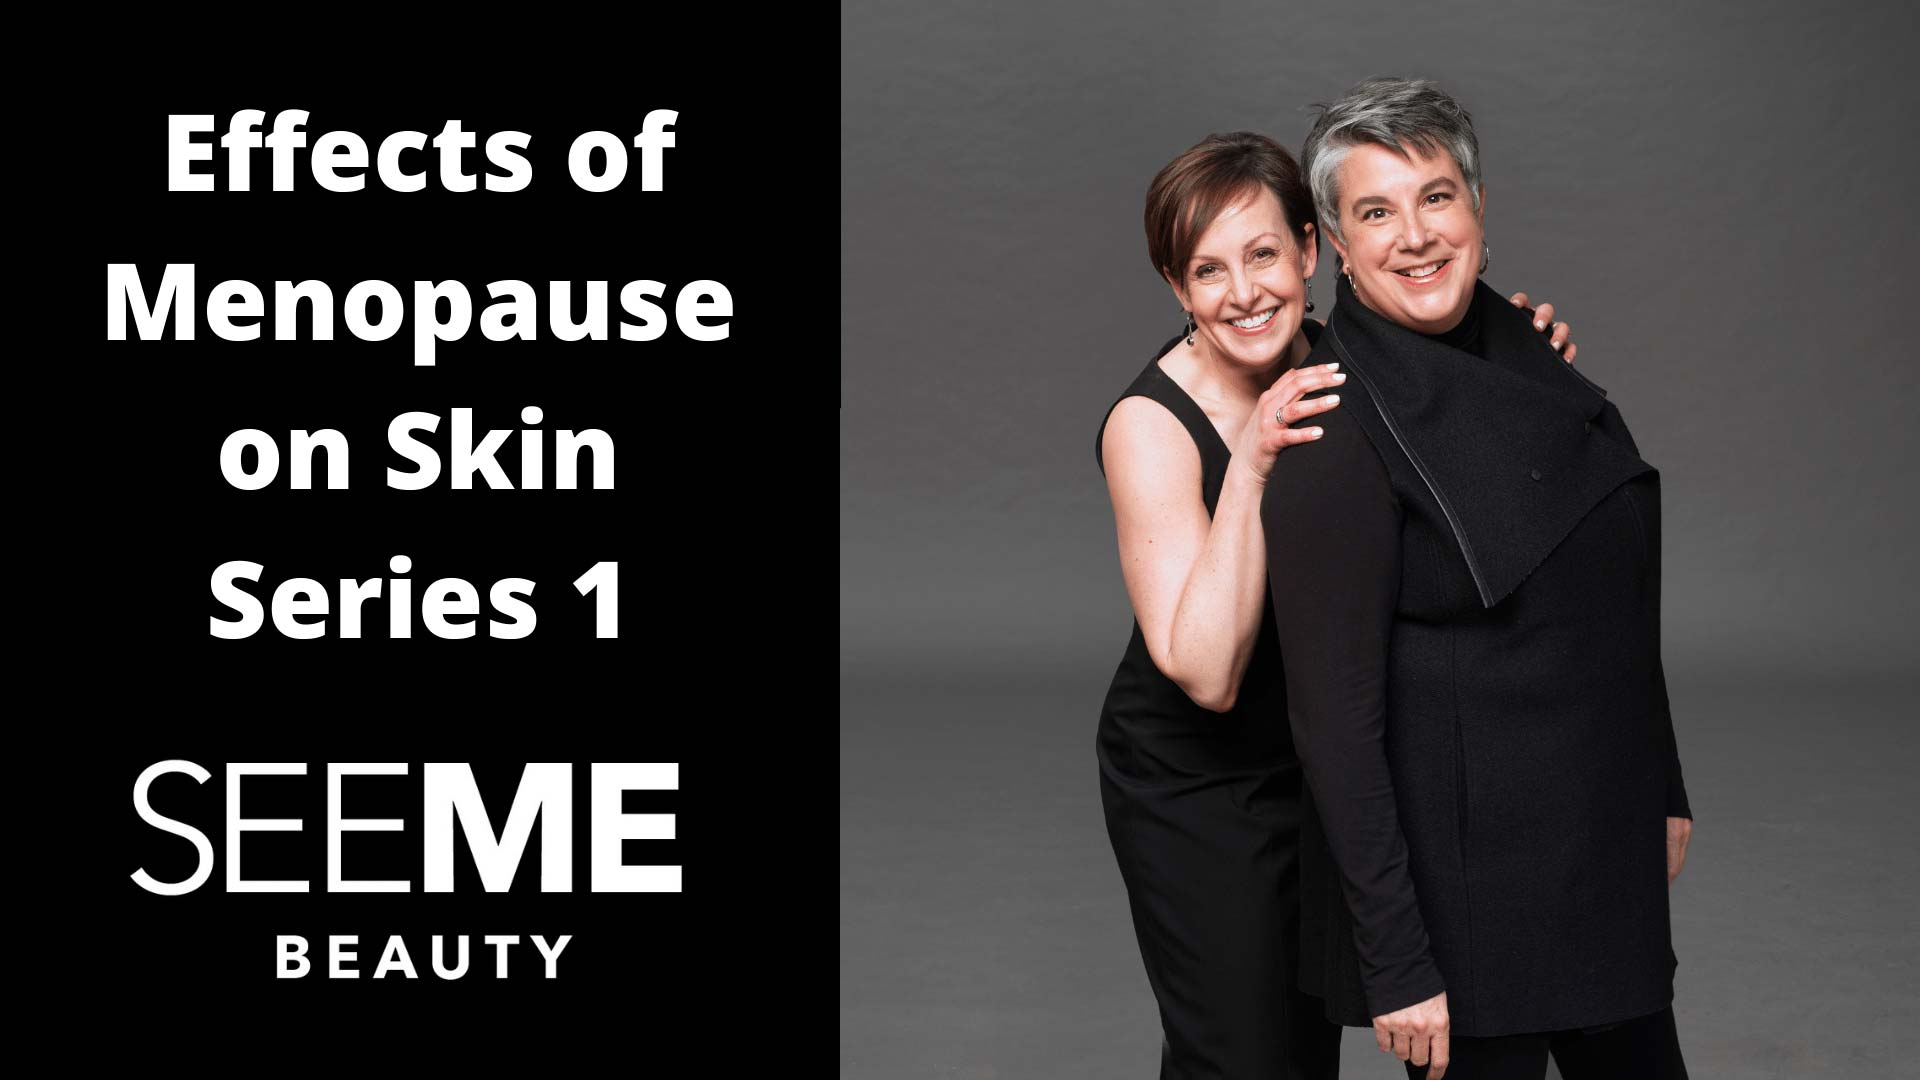 Effects of menopause on skin. Stronger skin barrier equals healthier you